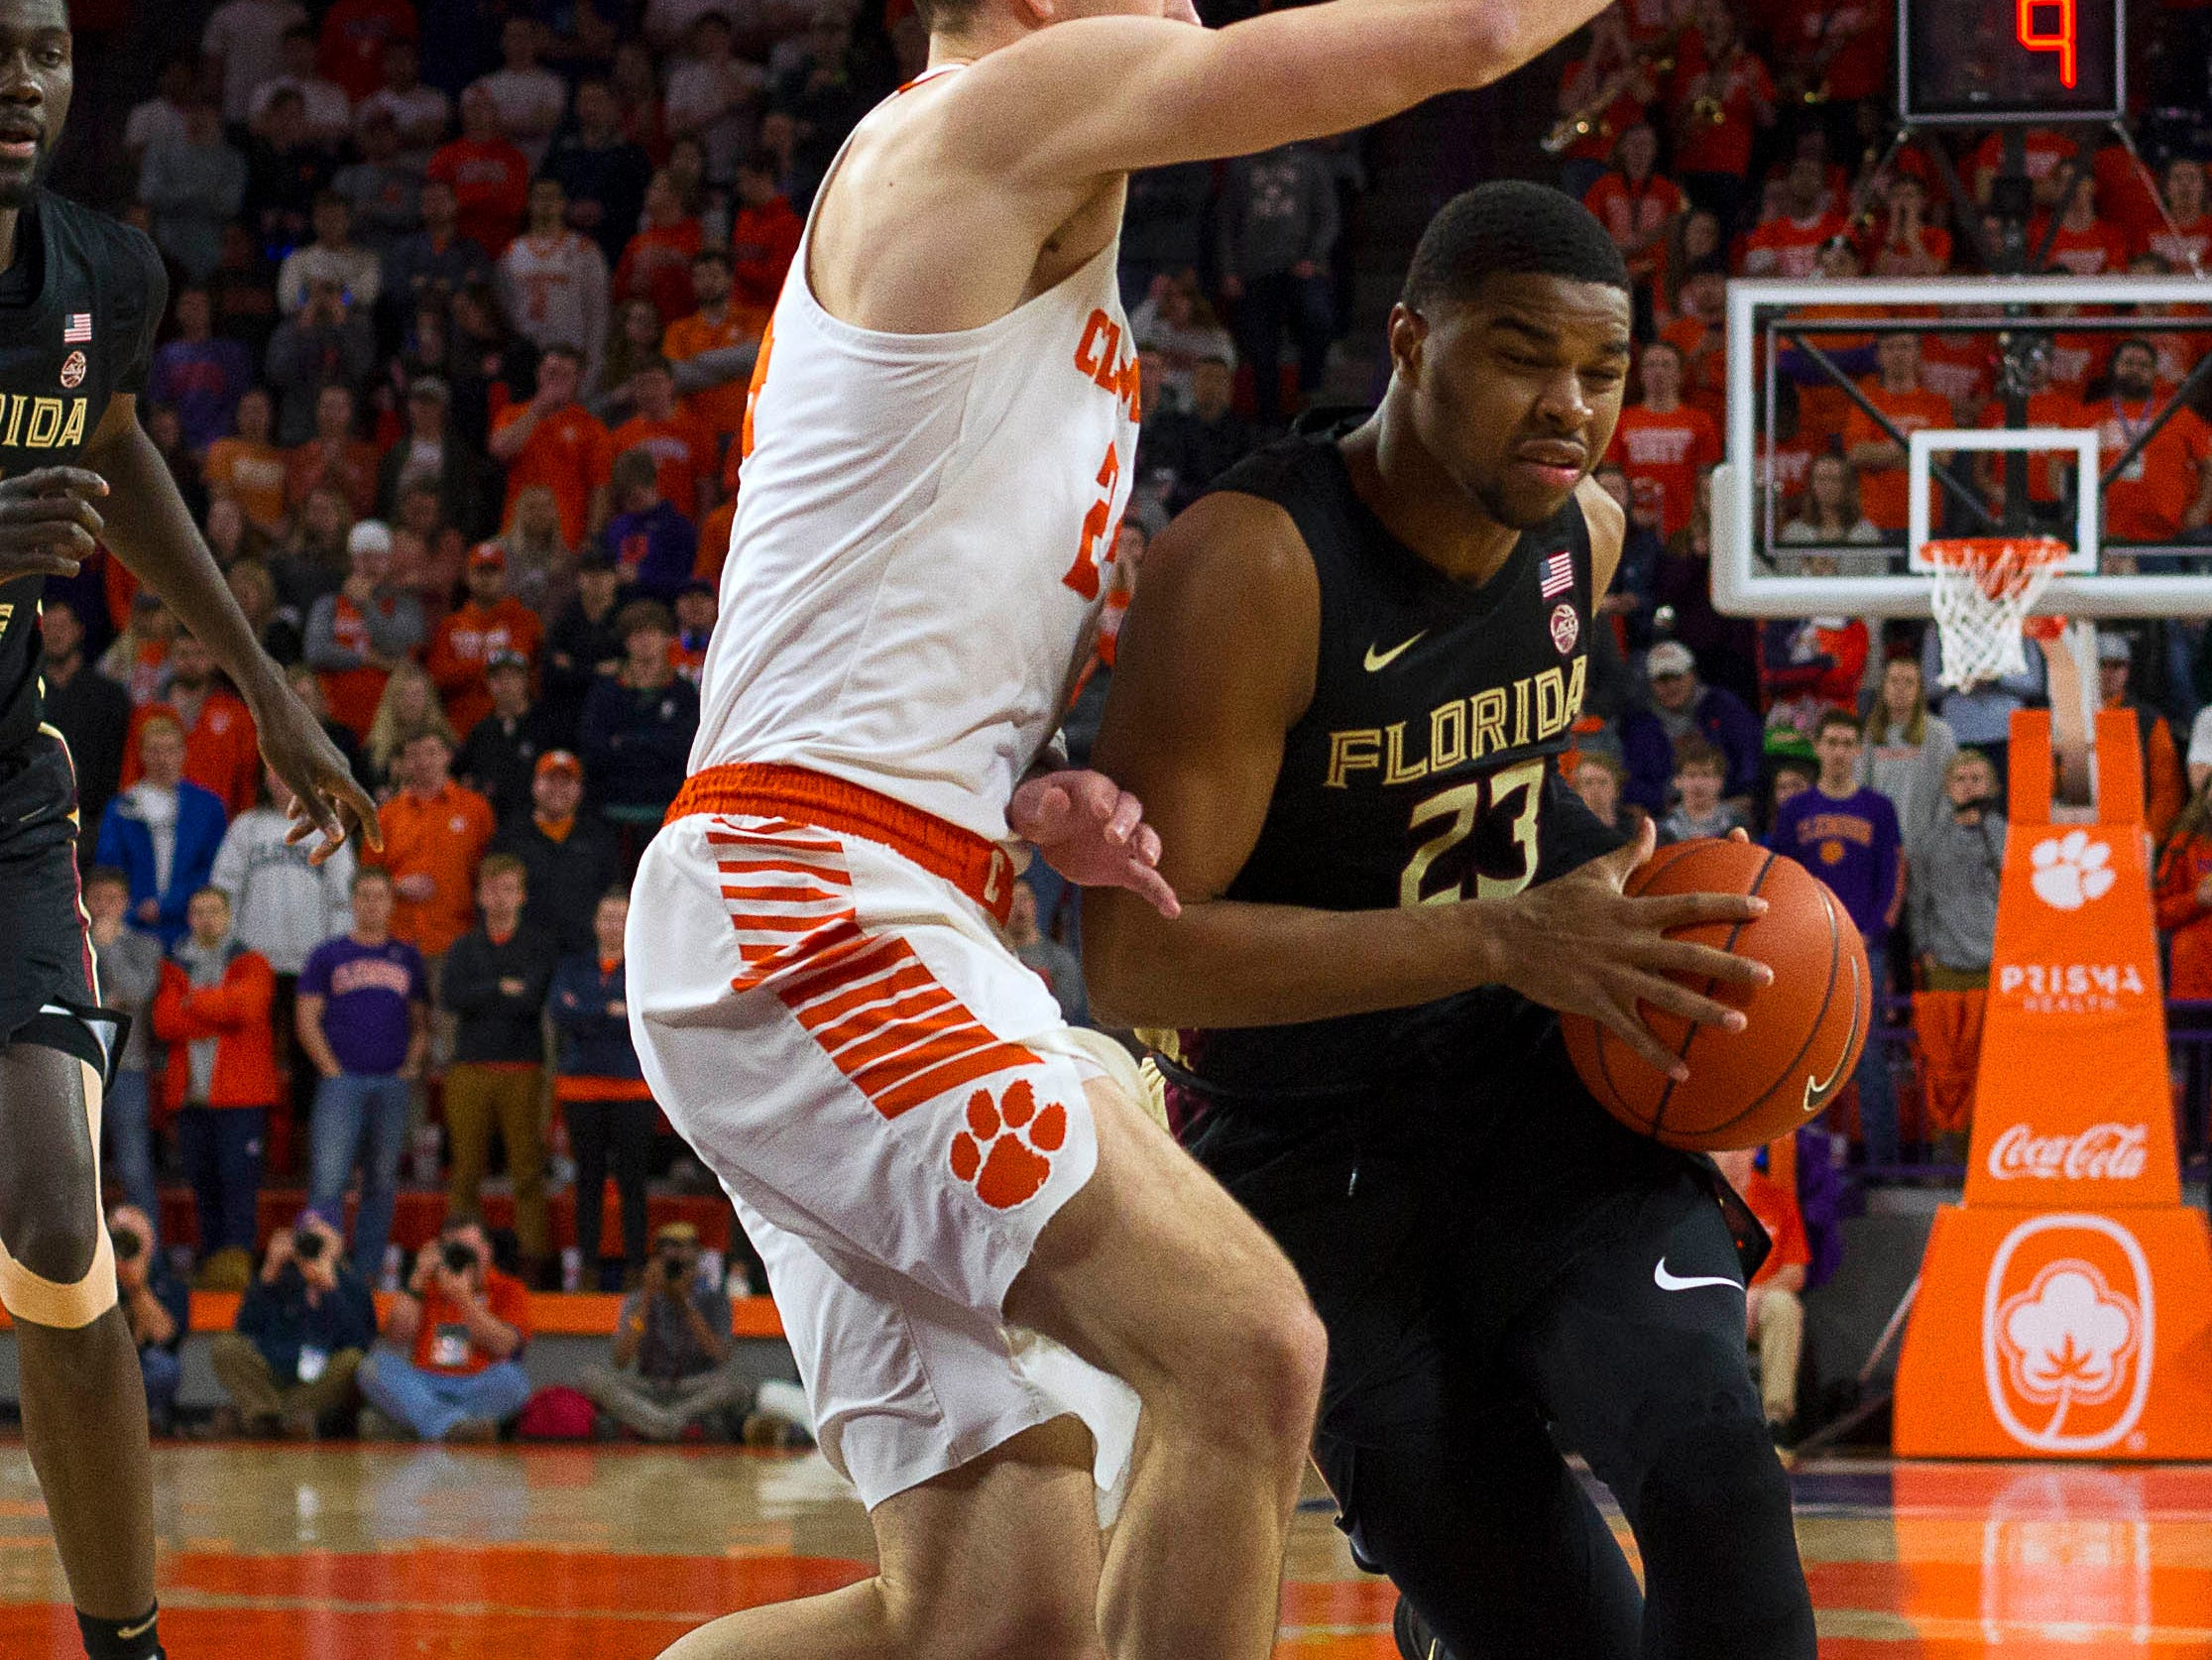 Feb 19, 2019; Clemson, SC, USA; Florida State Seminoles guard M.J. Walker (23) moves to the basket while being defended by Clemson Tigers forward David Skara (24) during the first half at Littlejohn Coliseum. Mandatory Credit: Joshua S. Kelly-USA TODAY Sports